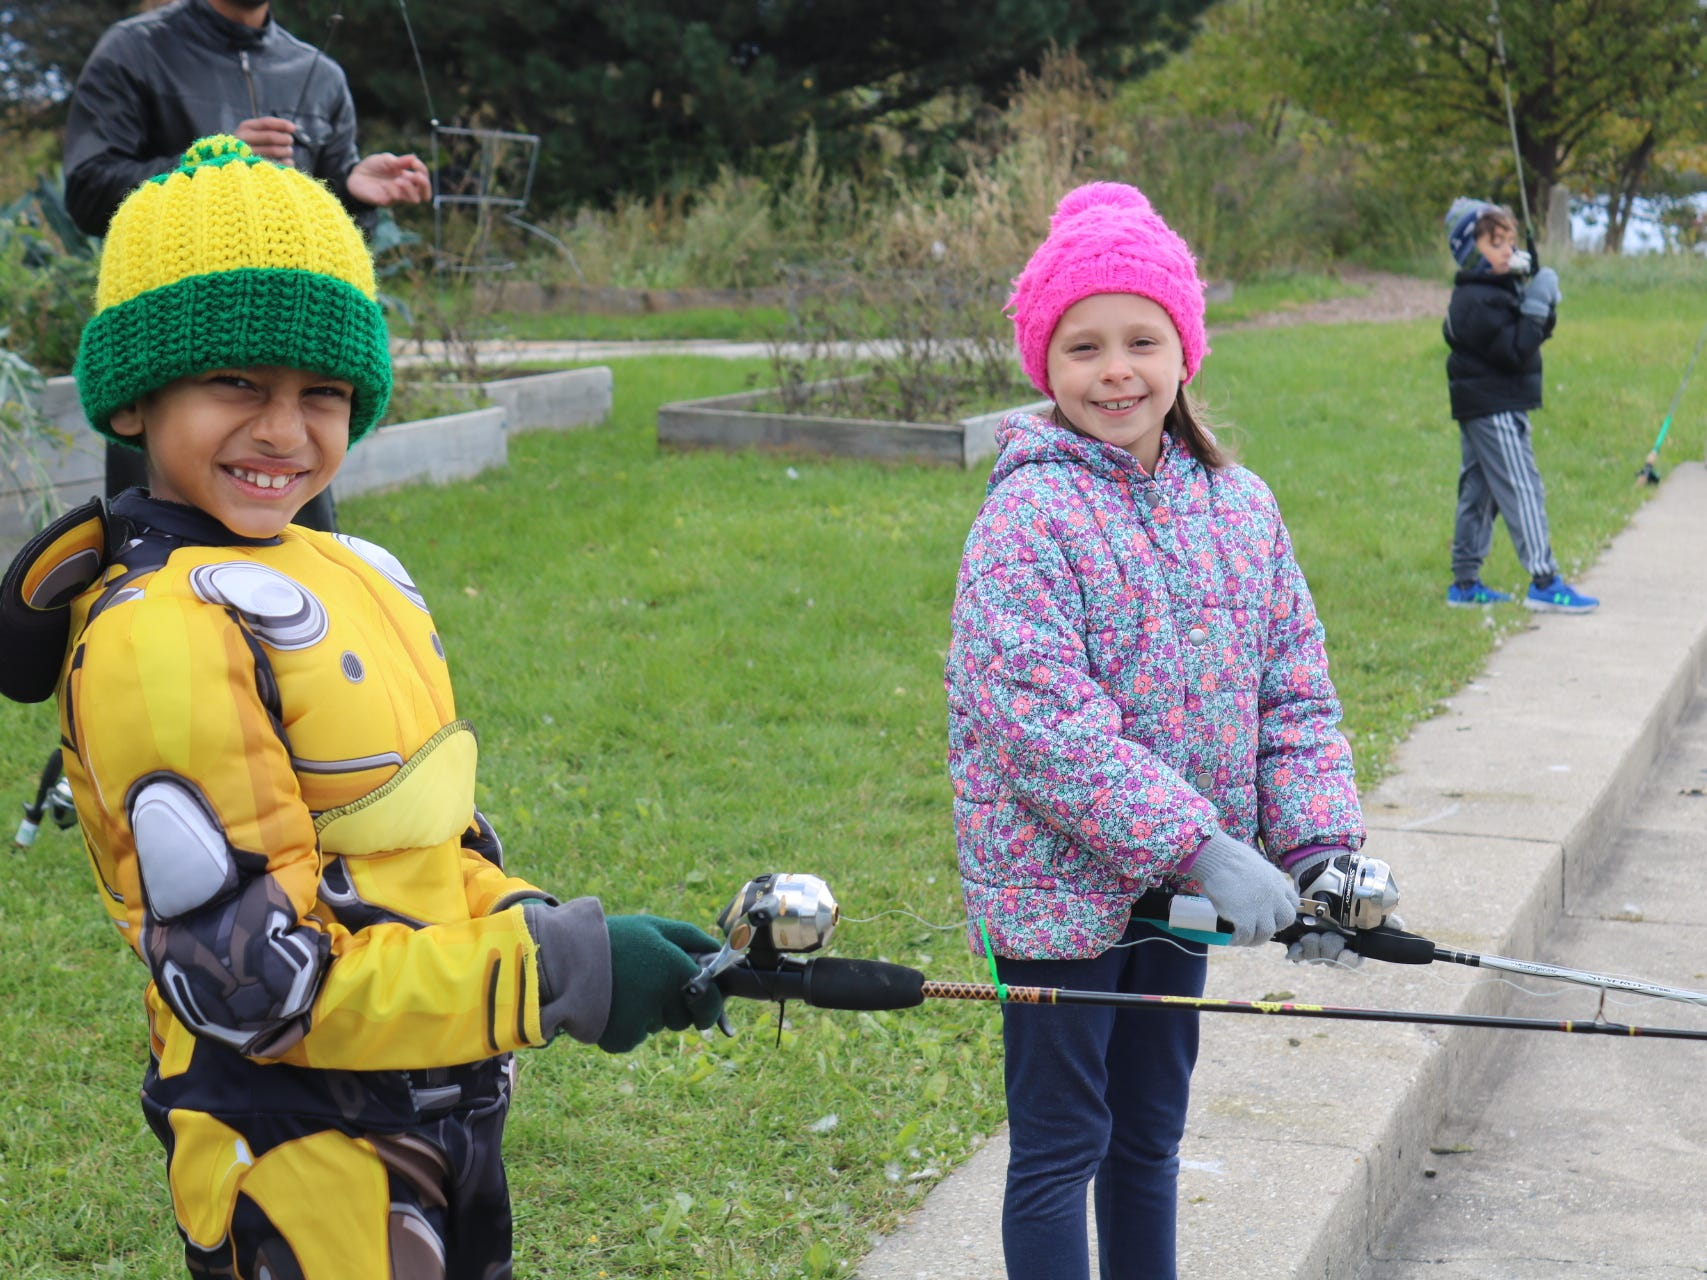 Children at an Urban Ecology Center 'b'earthday' party get some fishing time in.